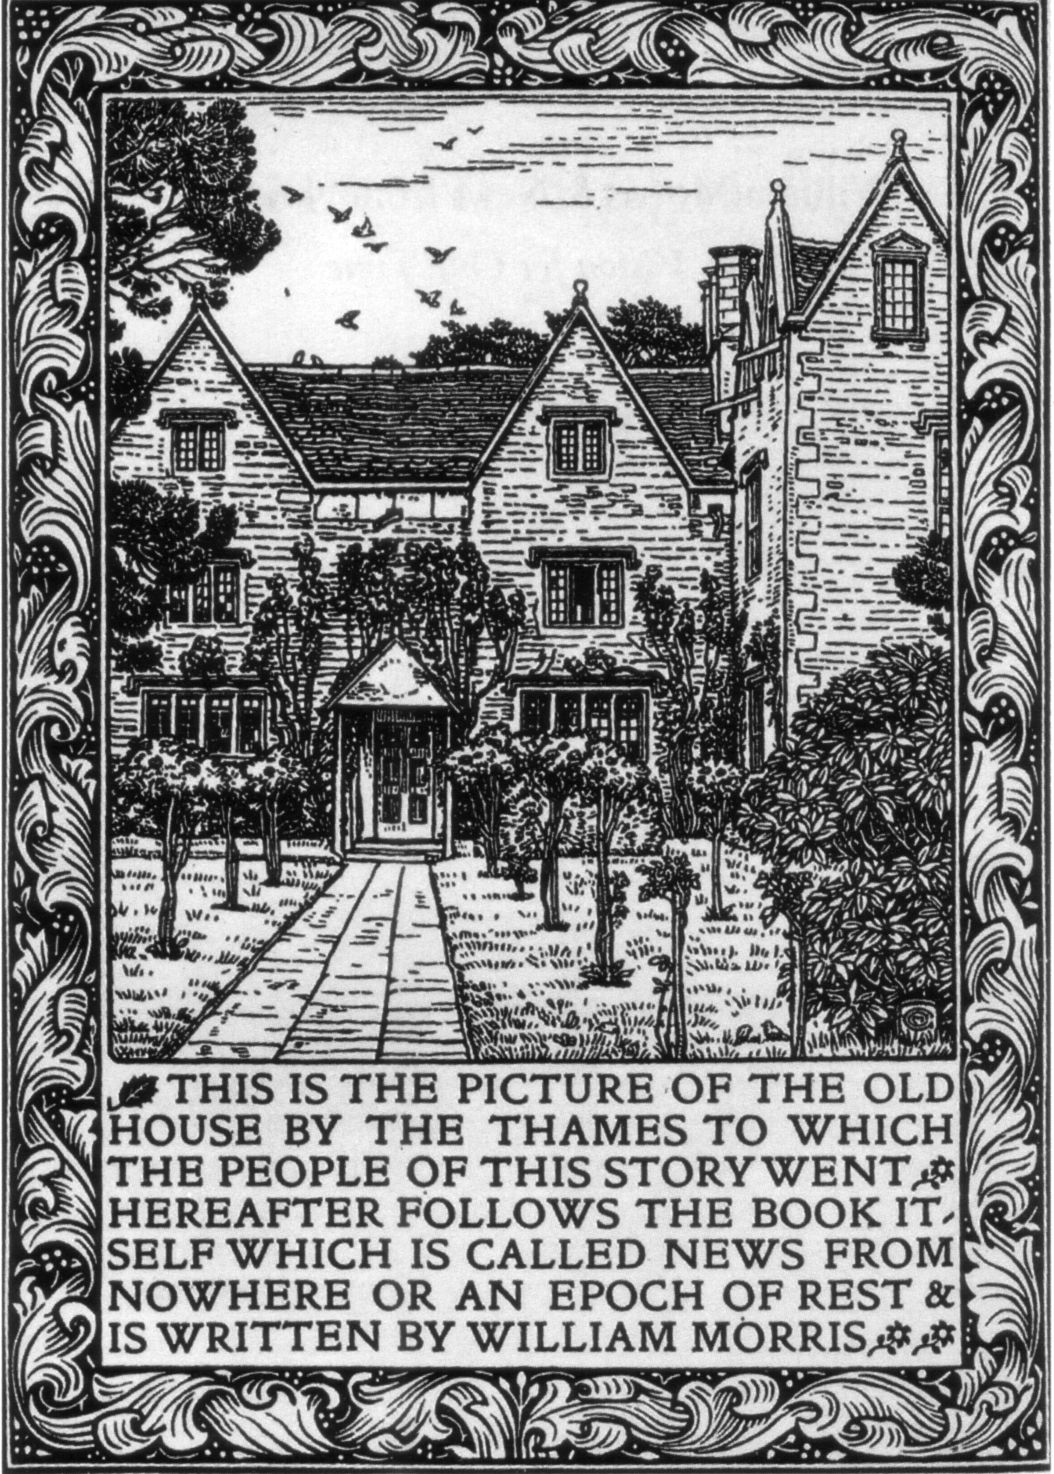 Kelmscott Manor depicted in the frontispiece to the 1893 Kelmscott Press edition of William Morris's News from Nowhere